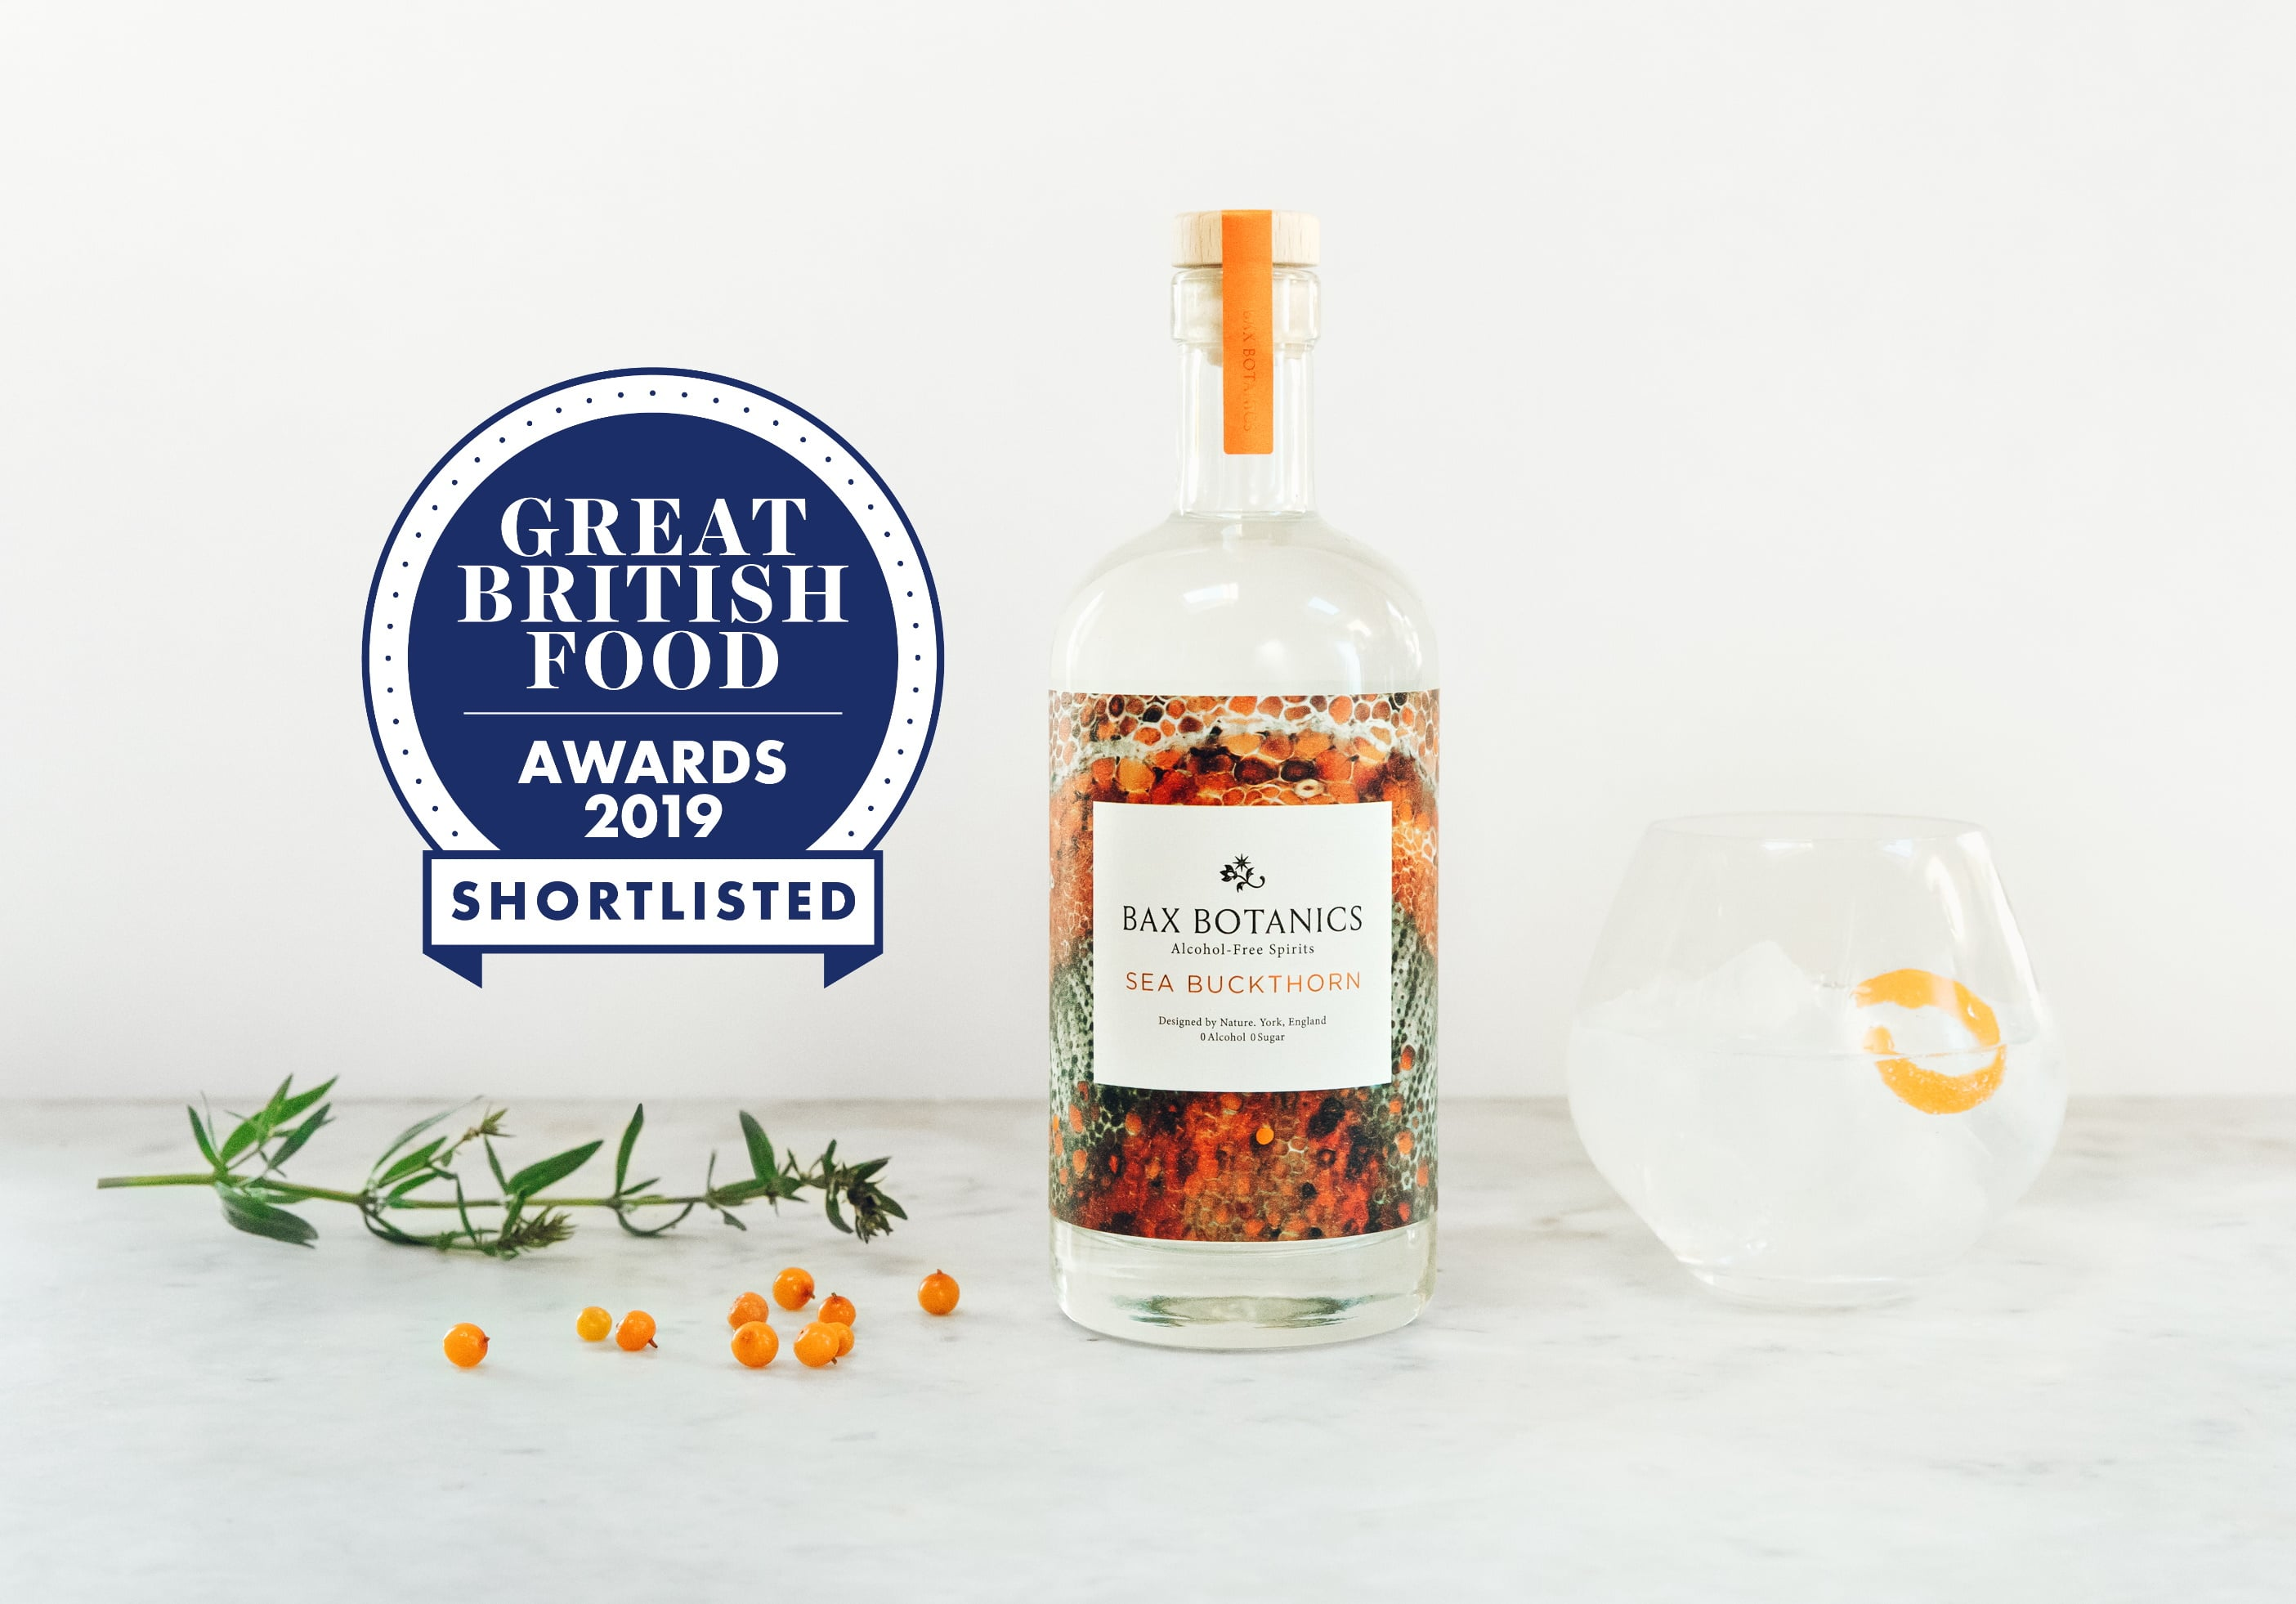 Bax Botanics Sea Buckthorn alcohol free spirit on the Great British Food awards shortlist.